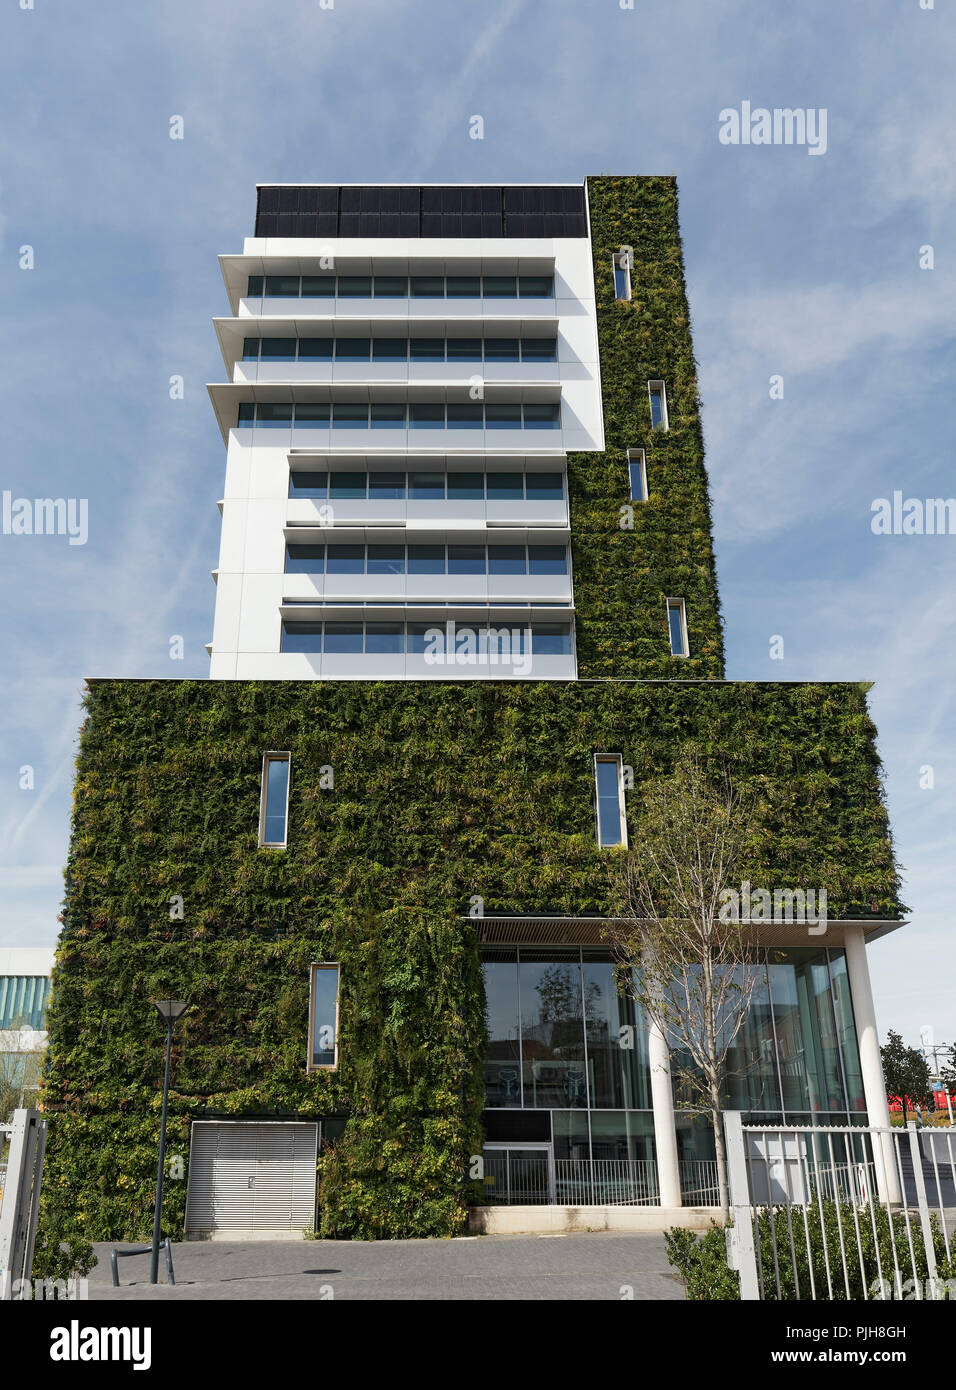 Public building with planted facade, ecological construction, New Town Hall, Venlo, Limburg, Netherlands - Stock Image